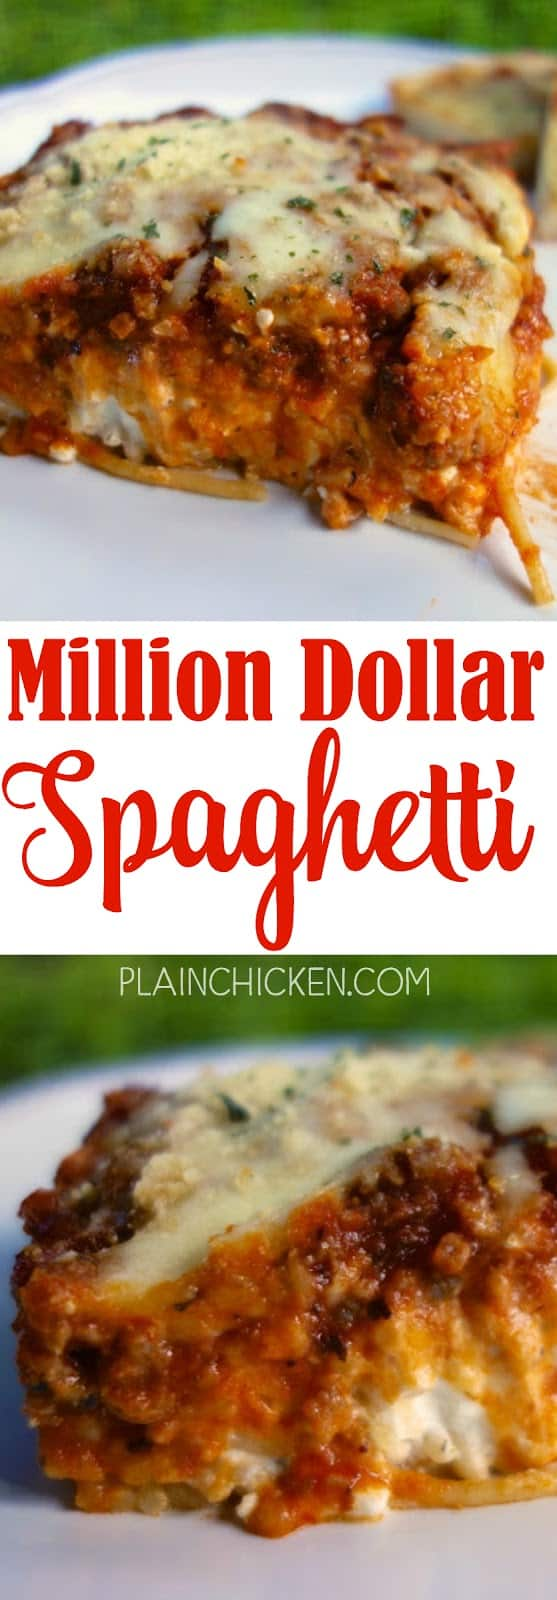 Million Dollar Spaghetti recipe - tastes like a million bucks! Great freezer meal too! Spaghetti, meat sauce, cottage cheese, cream cheese, sour cream and mozzarella. EVERYONE cleaned their plates and asked for seconds. Even our picky eaters!! This is definitely going into the rotation.